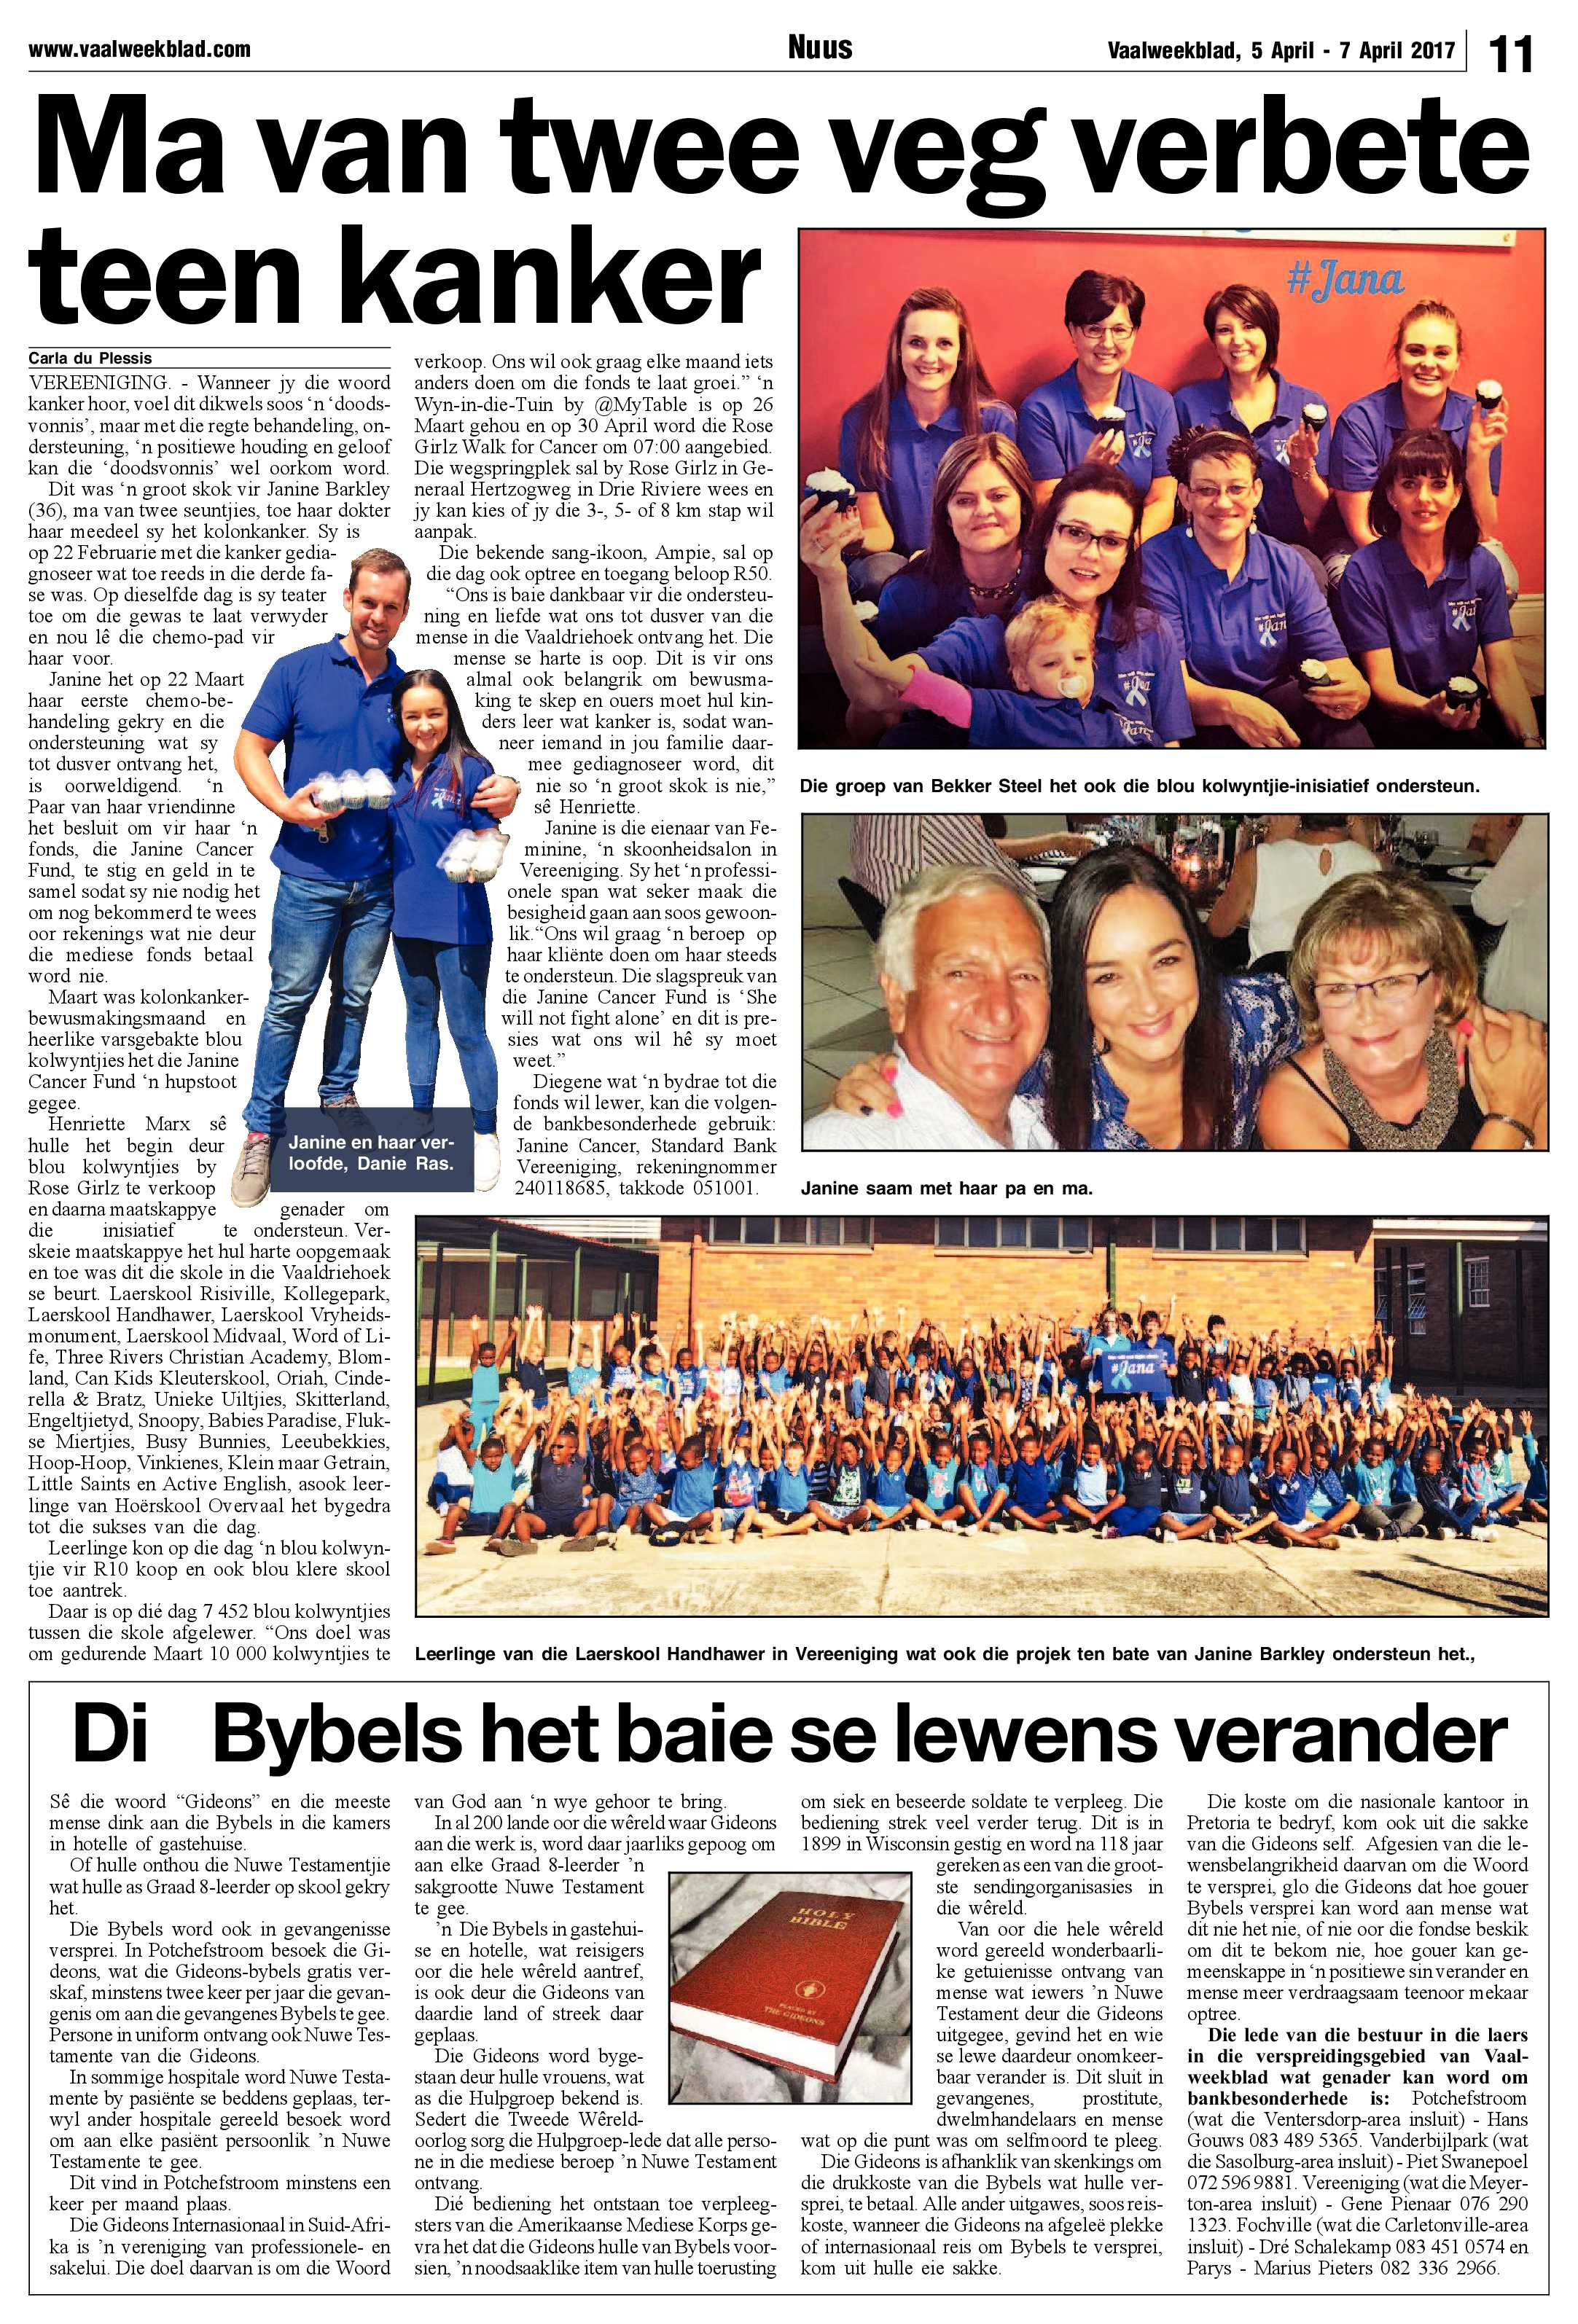 vaalweekblad-5-7-april-2017-2-epapers-page-11